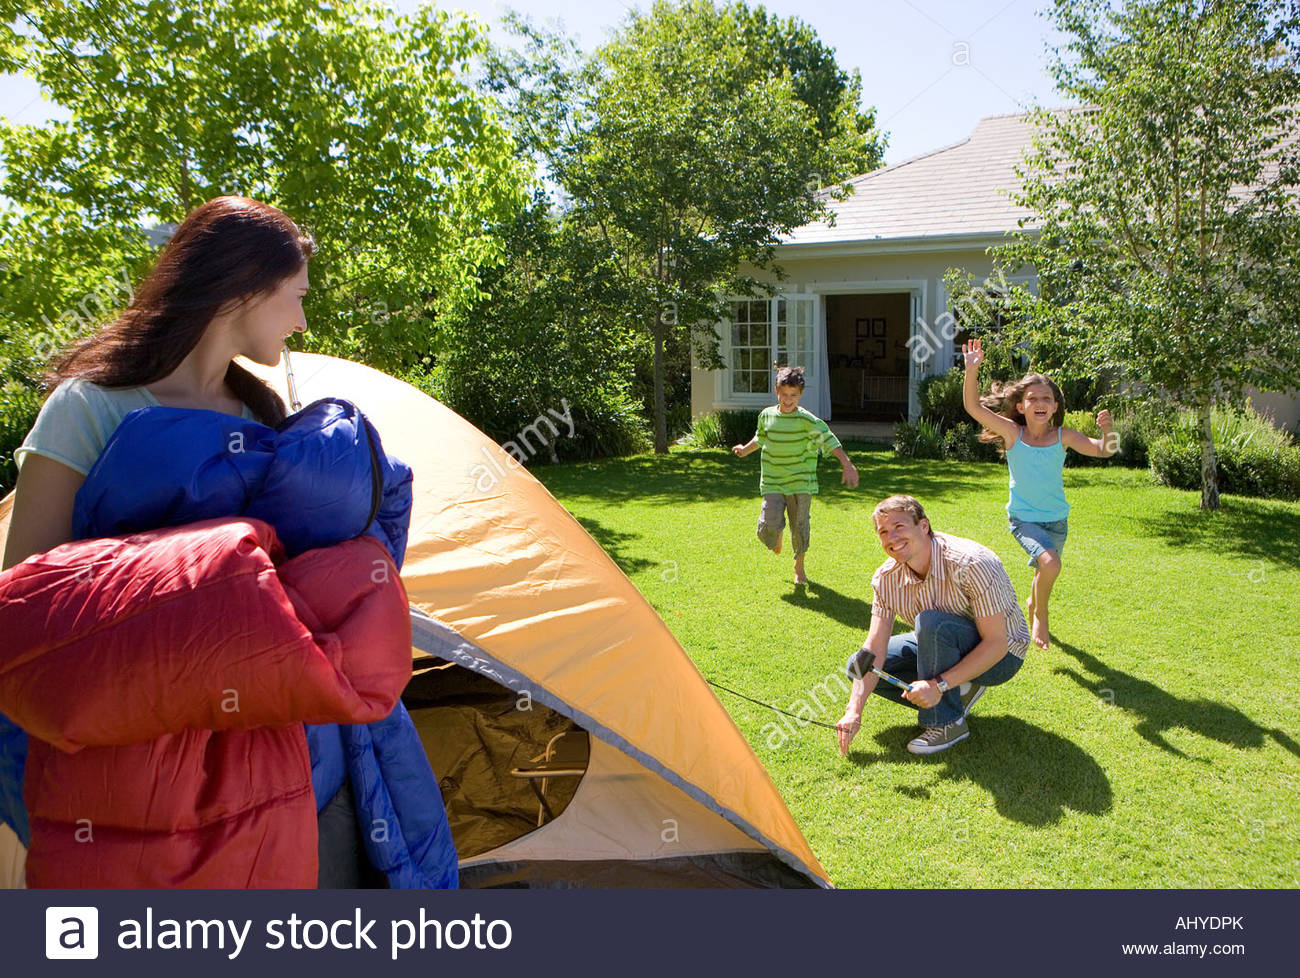 Family assembling dome tent in garden father hammering tent peg into grass mother carrying sleeping bags children running & Family assembling dome tent in garden father hammering tent peg ...